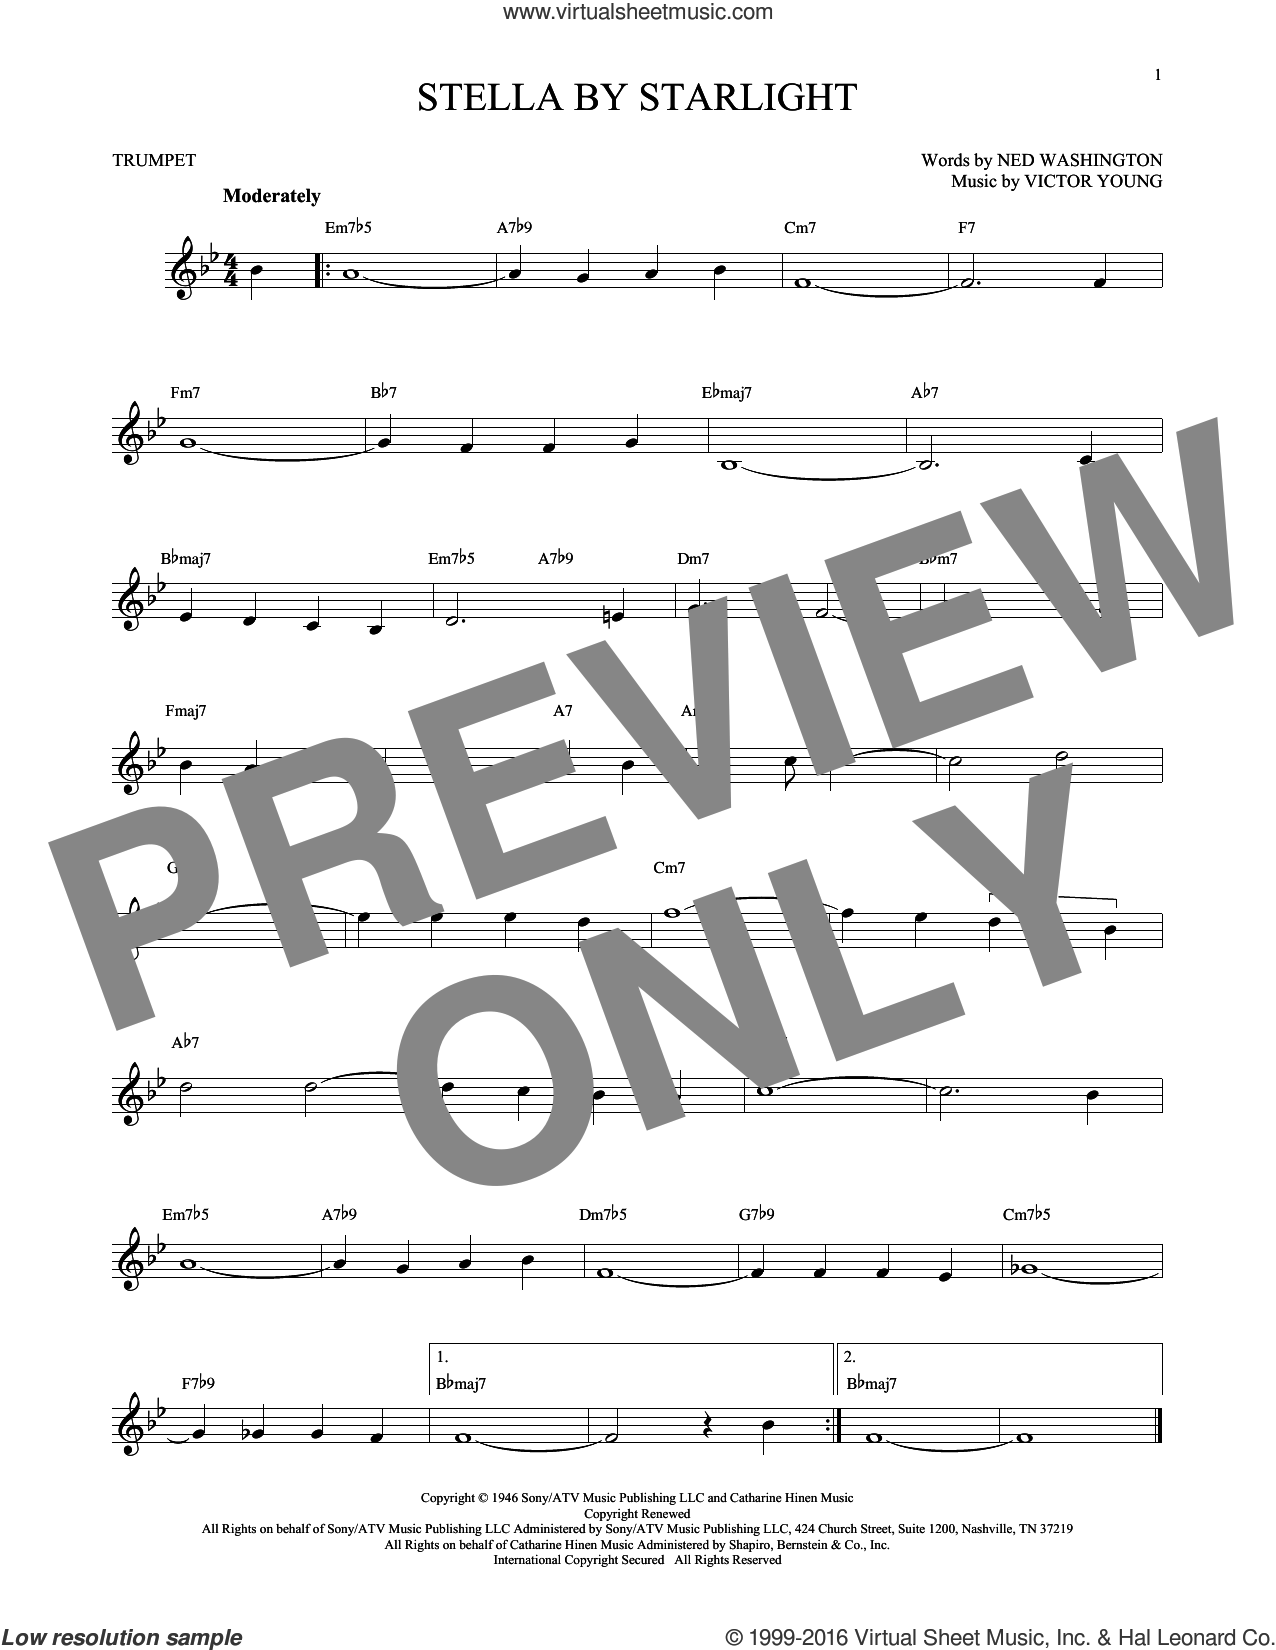 Stella By Starlight sheet music for trumpet solo by Ned Washington, Ray Charles and Victor Young, intermediate skill level